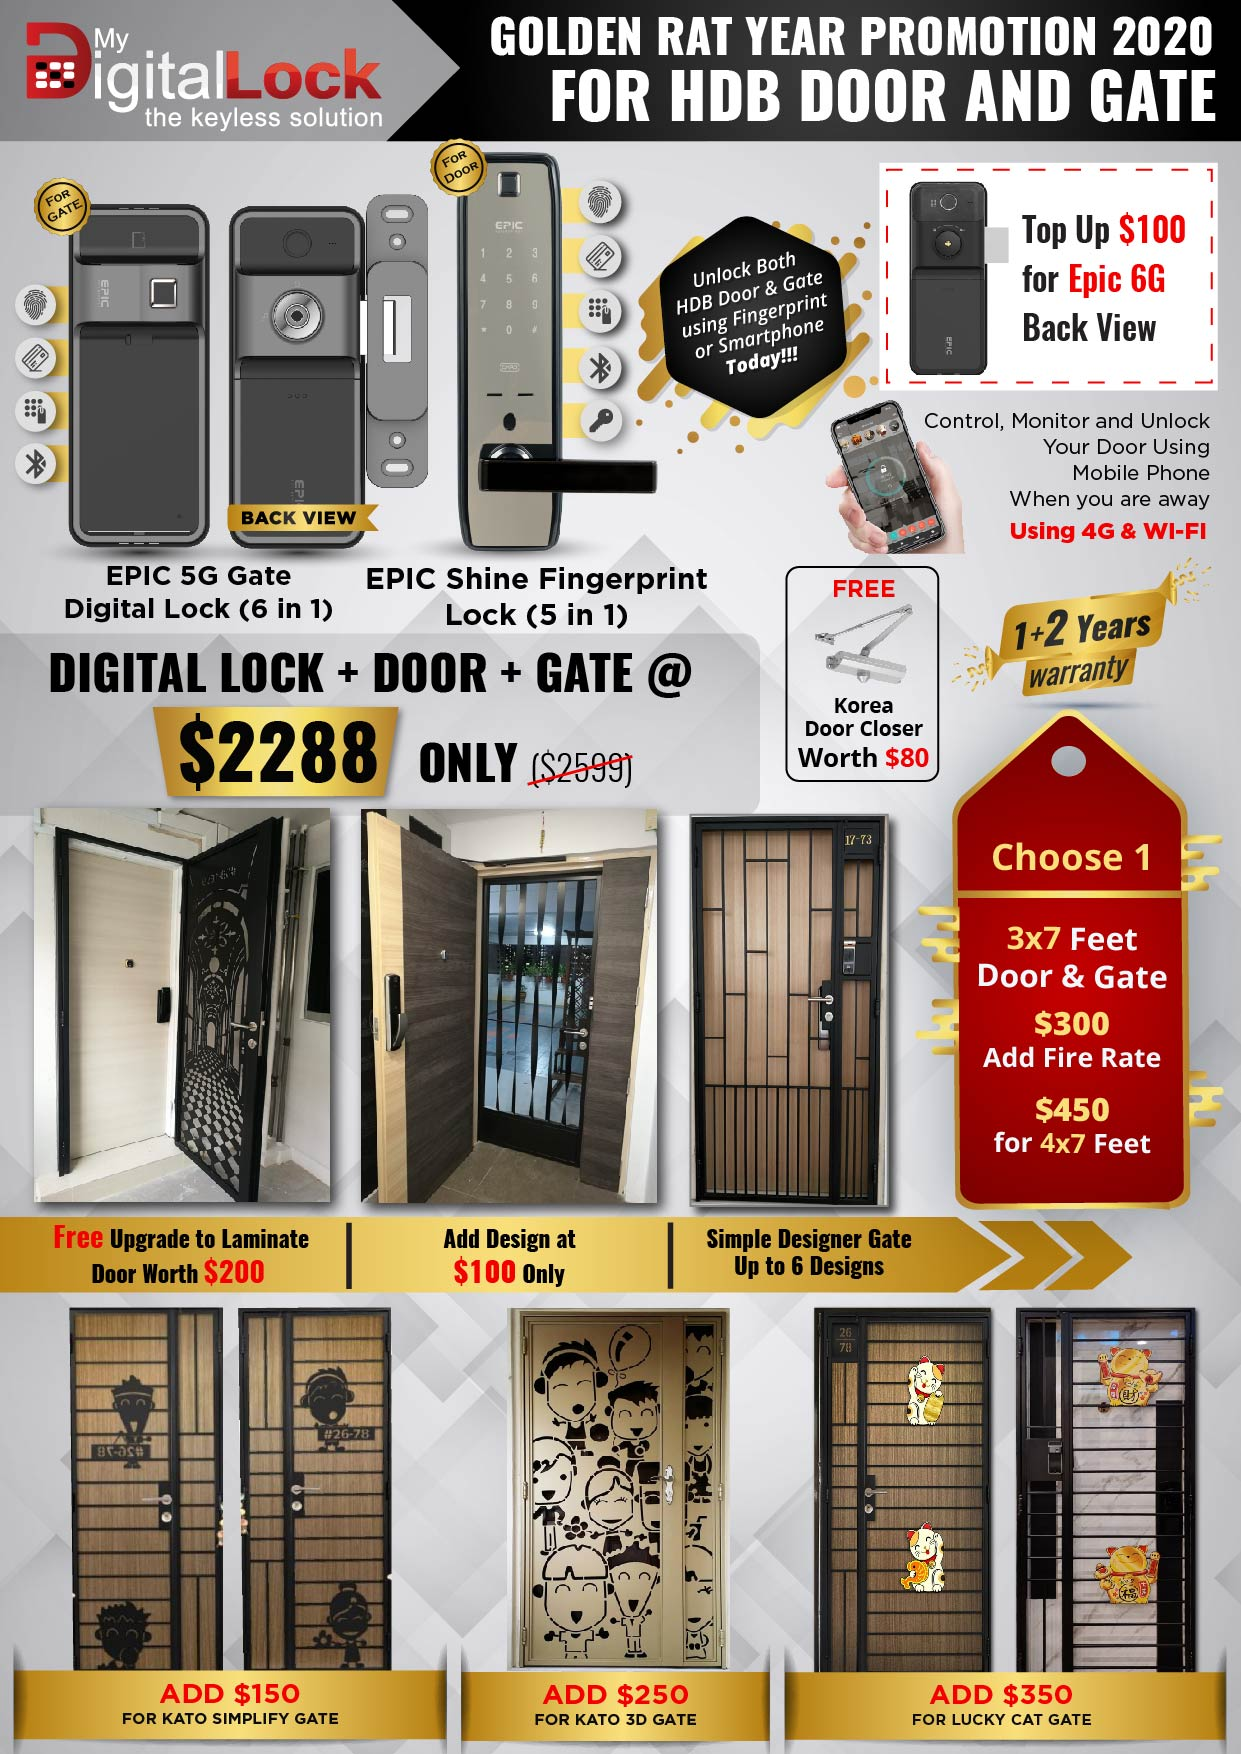 Golden Rat Year HDB Door and Gate Promotion with EPIC 5G Gate and Shine Fingerprint Digital Lock